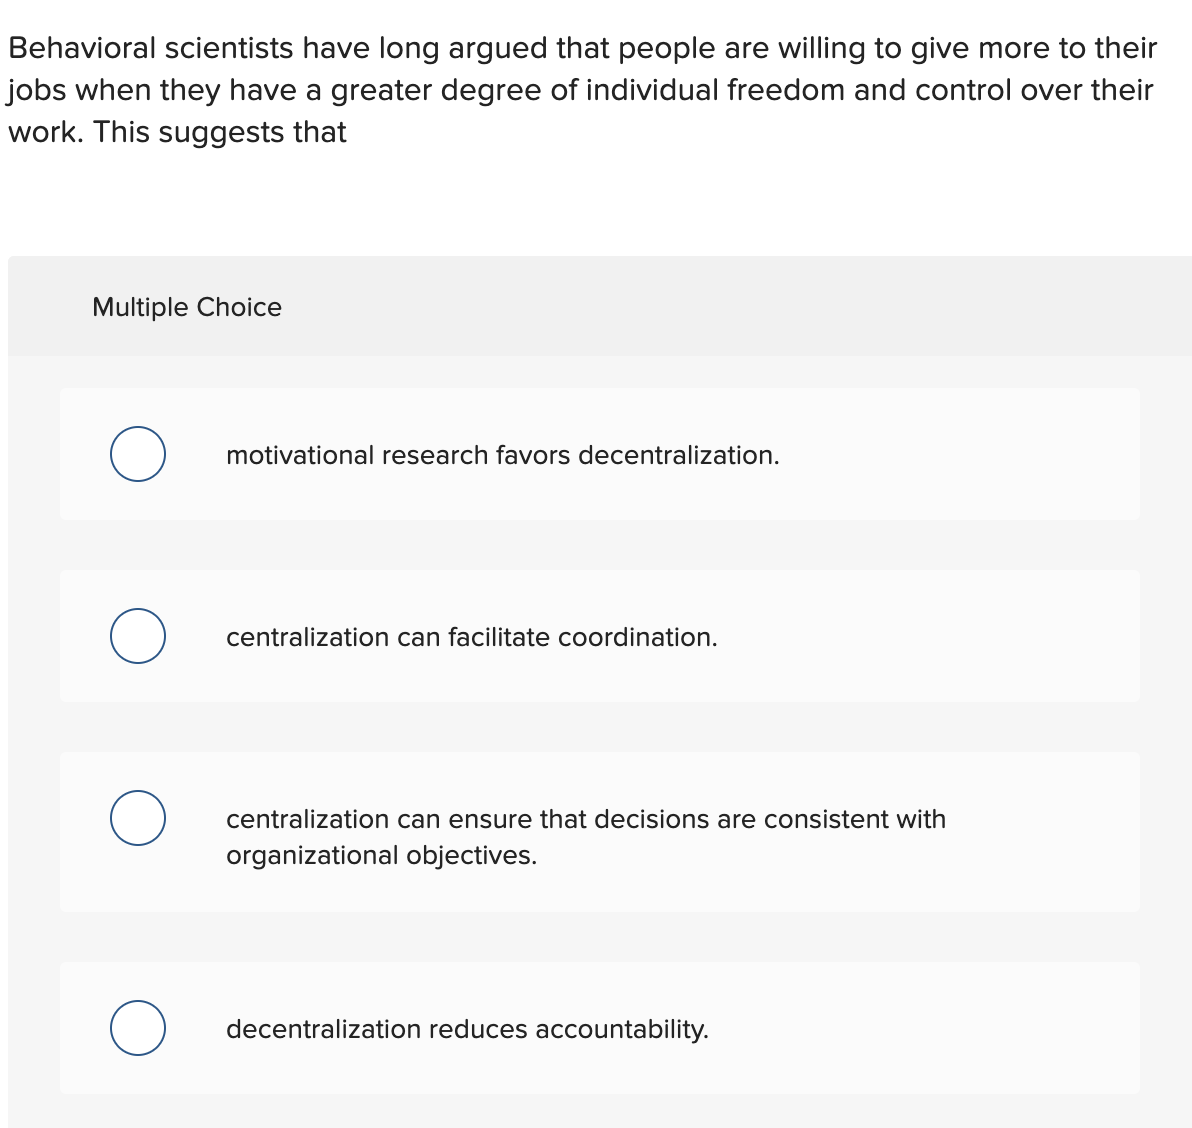 Behavioral scientists have long argued that people are willing to give more to their jobs when they have a greater degree of individual freedom and control over their work. This suggests that Multiple Choice motivational research favors decentralization. centralization can facilitate coordination. centralization can ensure that decisions are consistent with organizational objectives. decentralization reduces accountability.